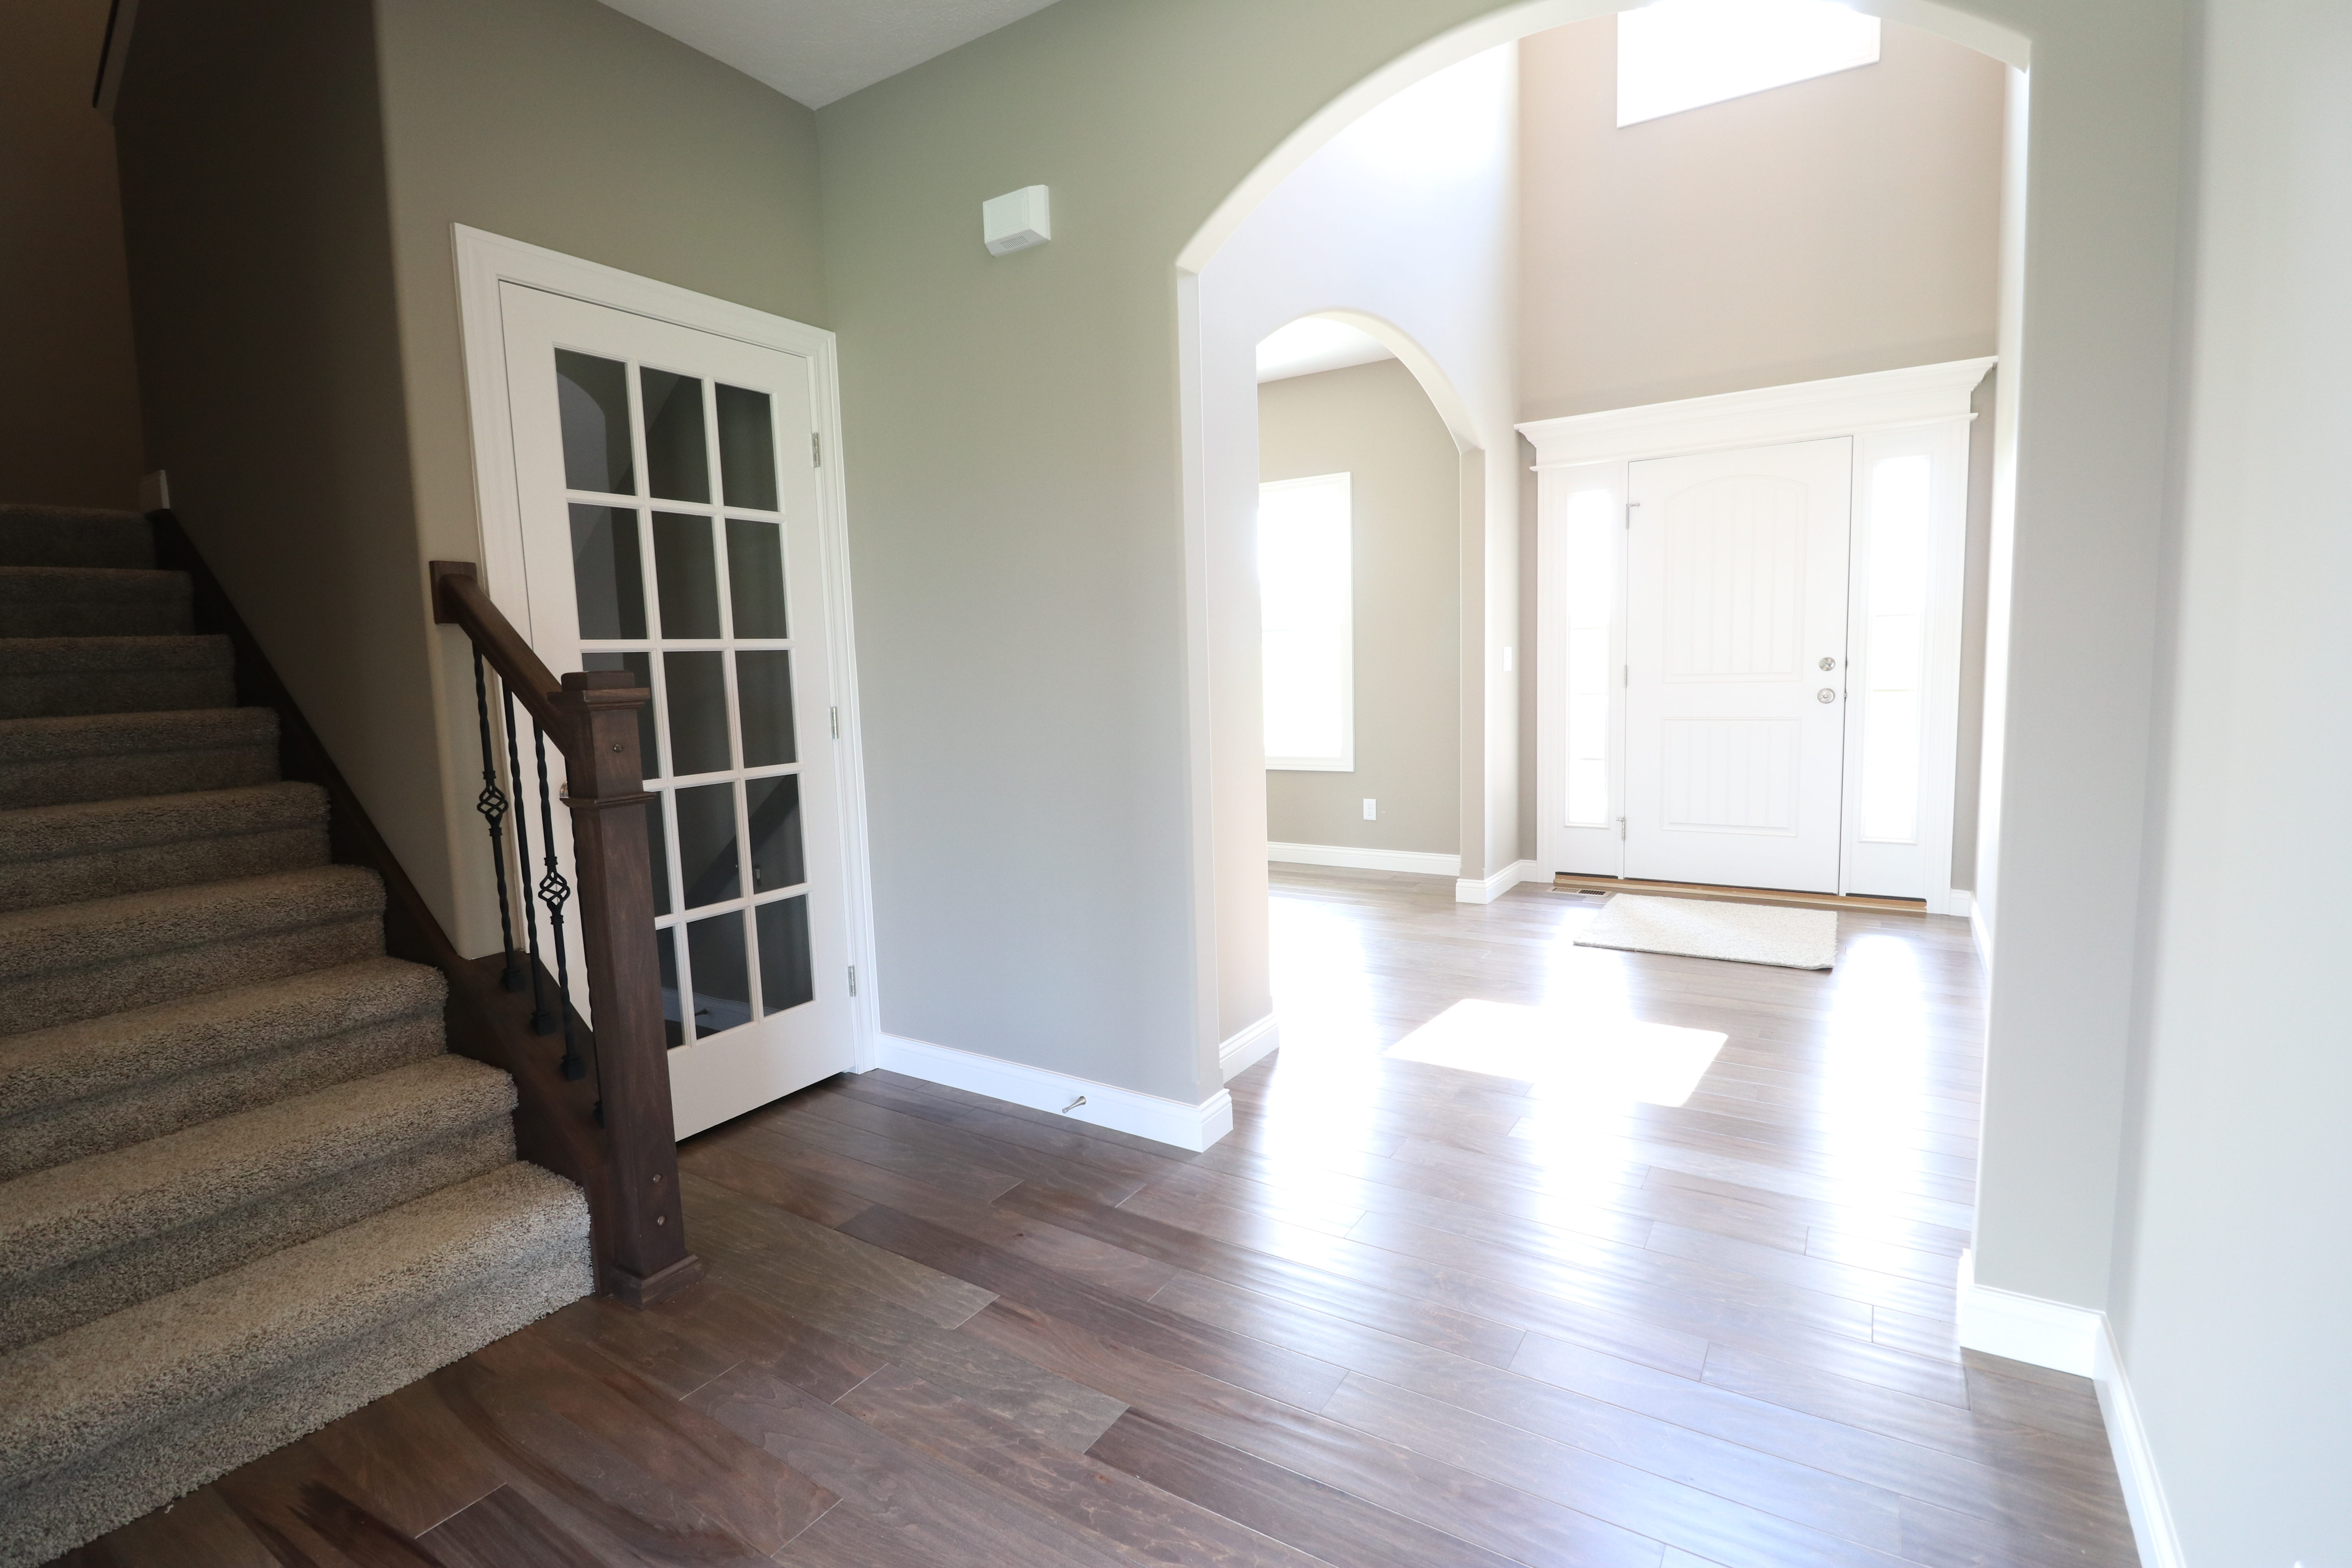 House for sale in the Dunlap peoria area stairs and entrance